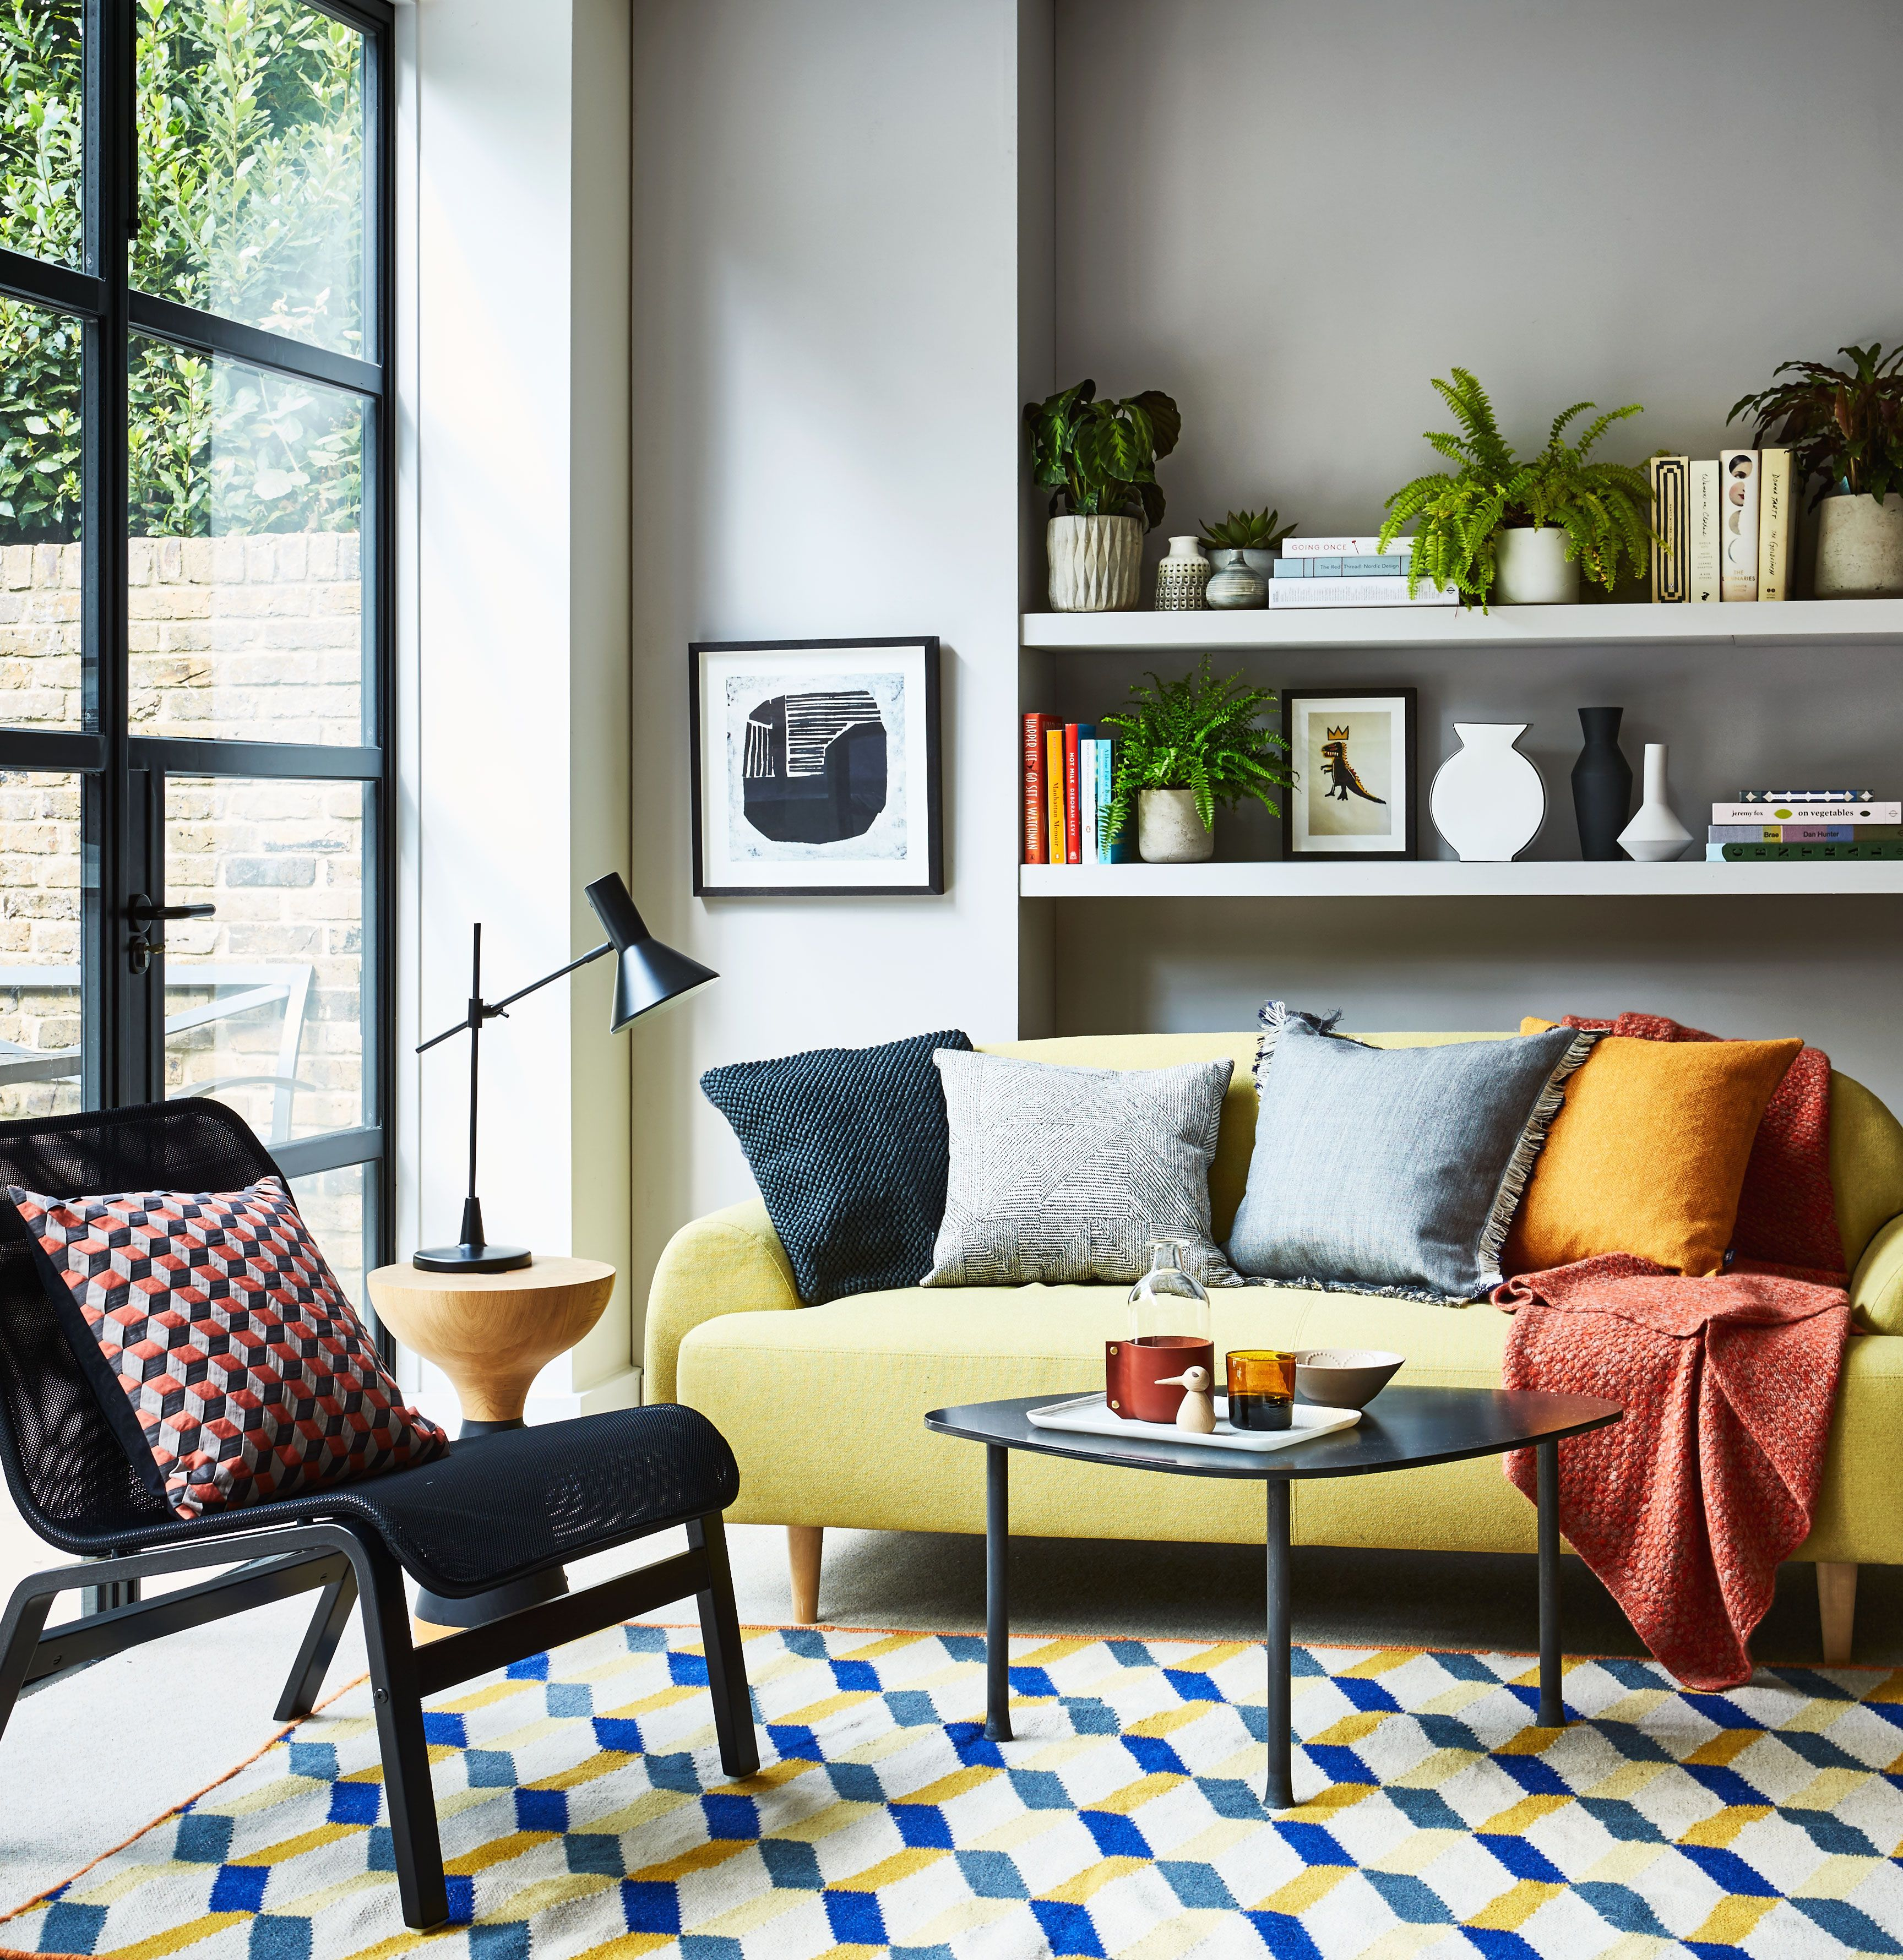 5 Rules To Consider Before You Buy A Sofa , Choosing A New Sofa